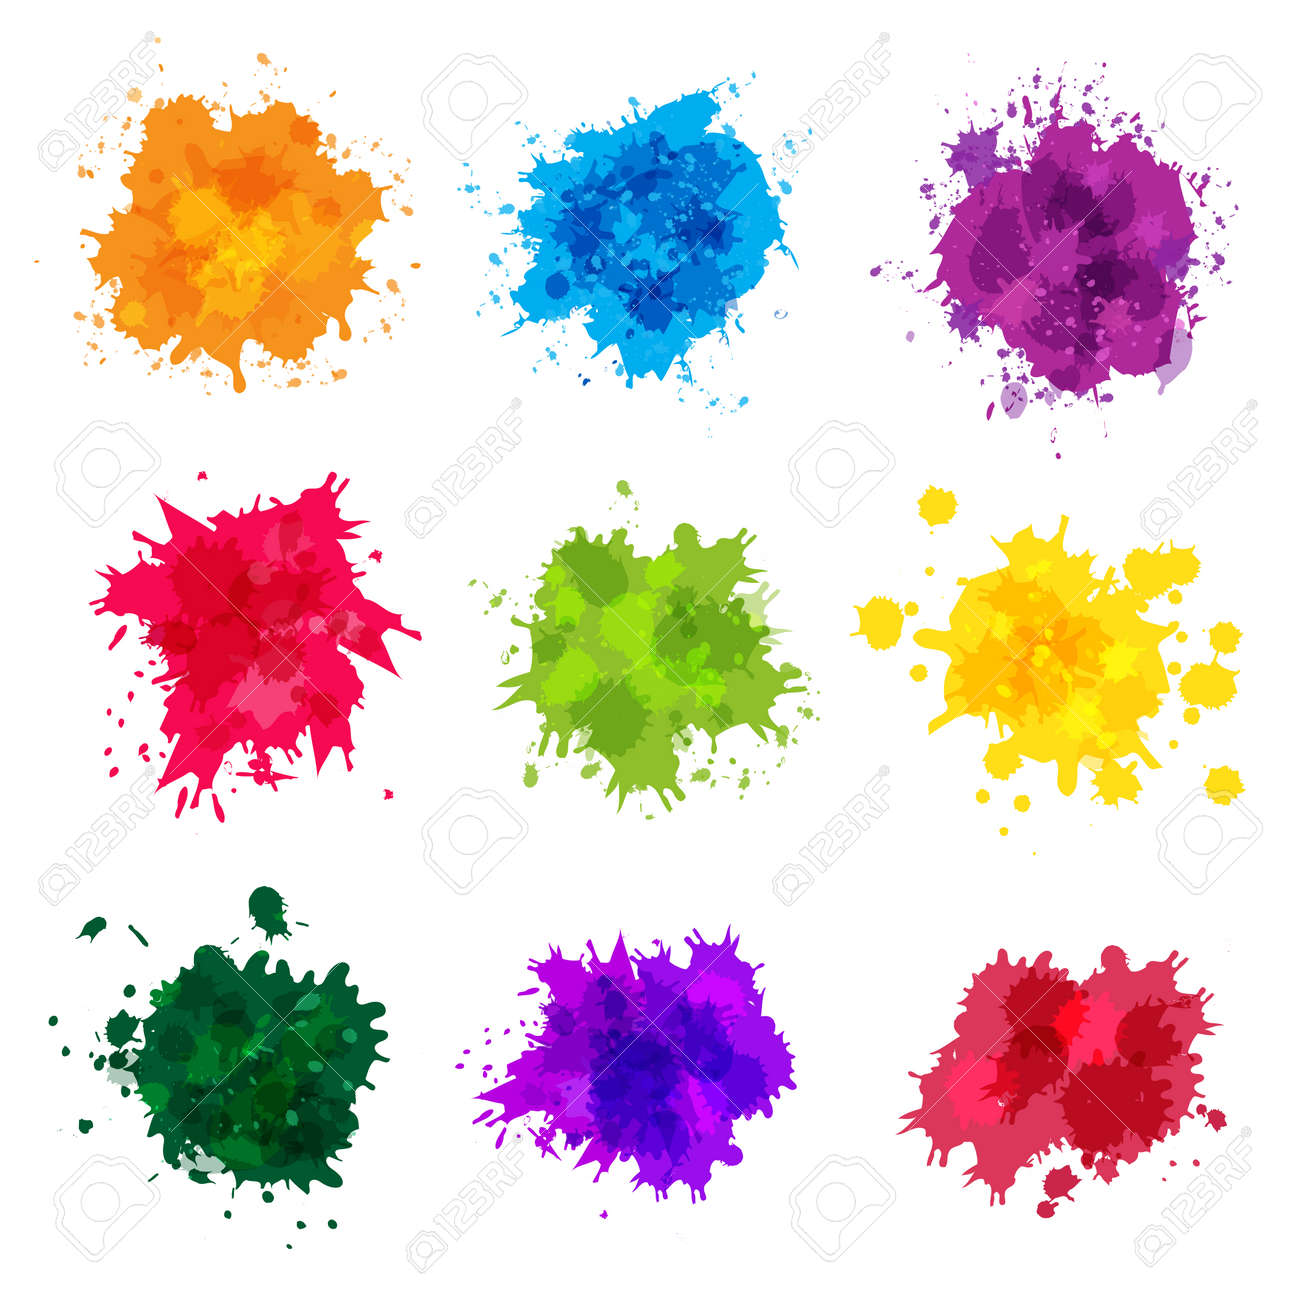 Paint splashes. Colored backdrop abstract splatter graphics ink yellow blue green magenta recent vector collection splashes template. Splatter green and blue splash, stain artistic dirty illustration - 166223471